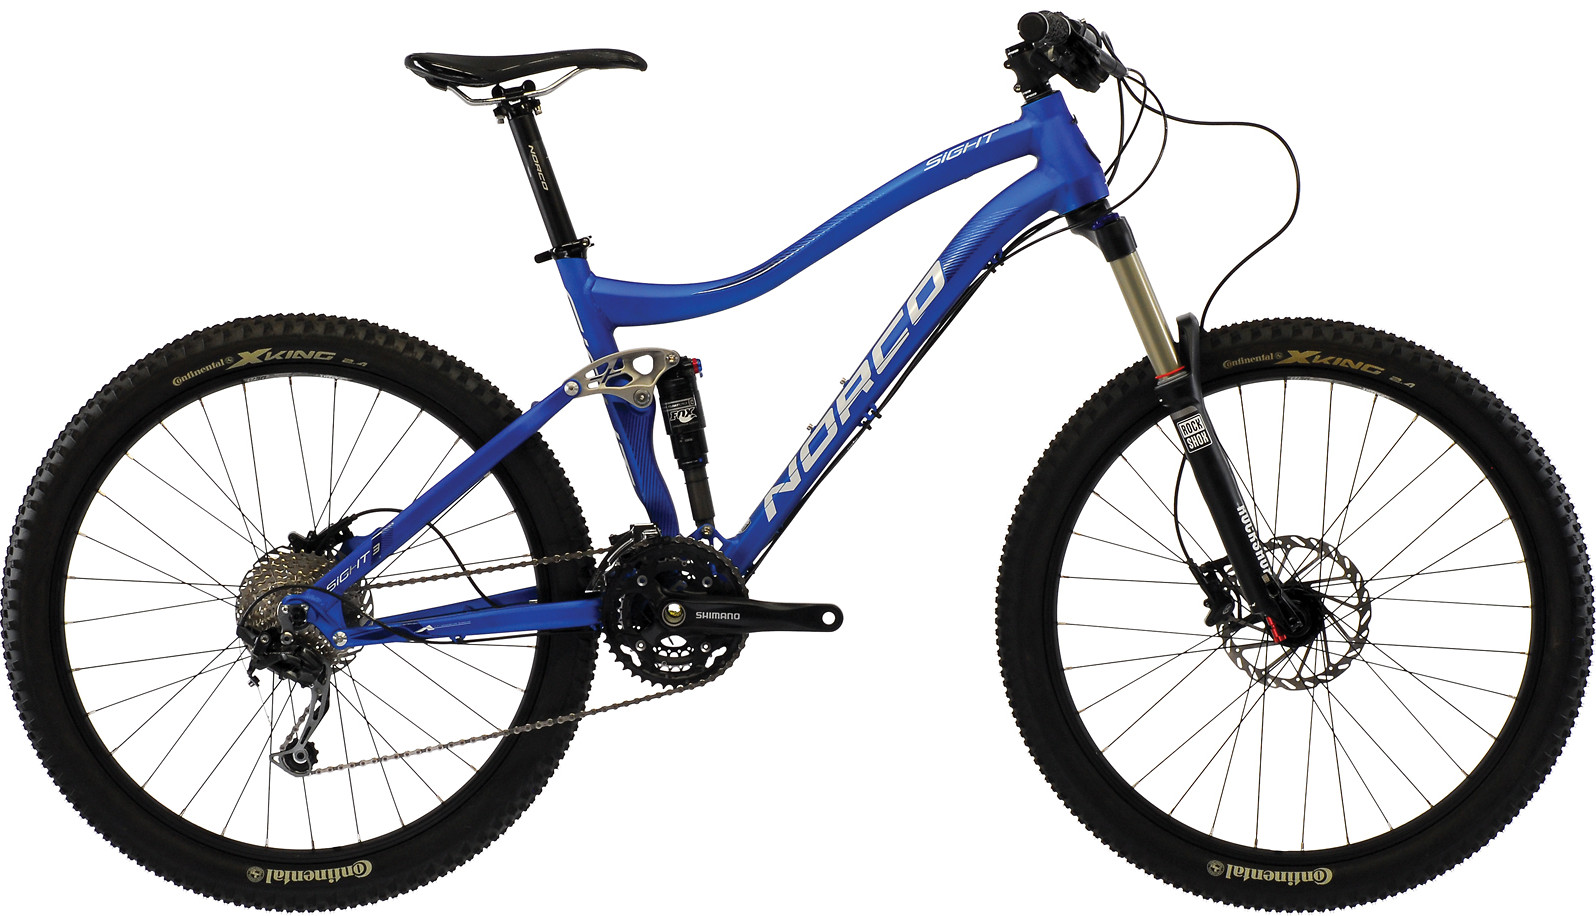 2013 Norco Sight 3 Bike 064430-13-02-sight3-blue